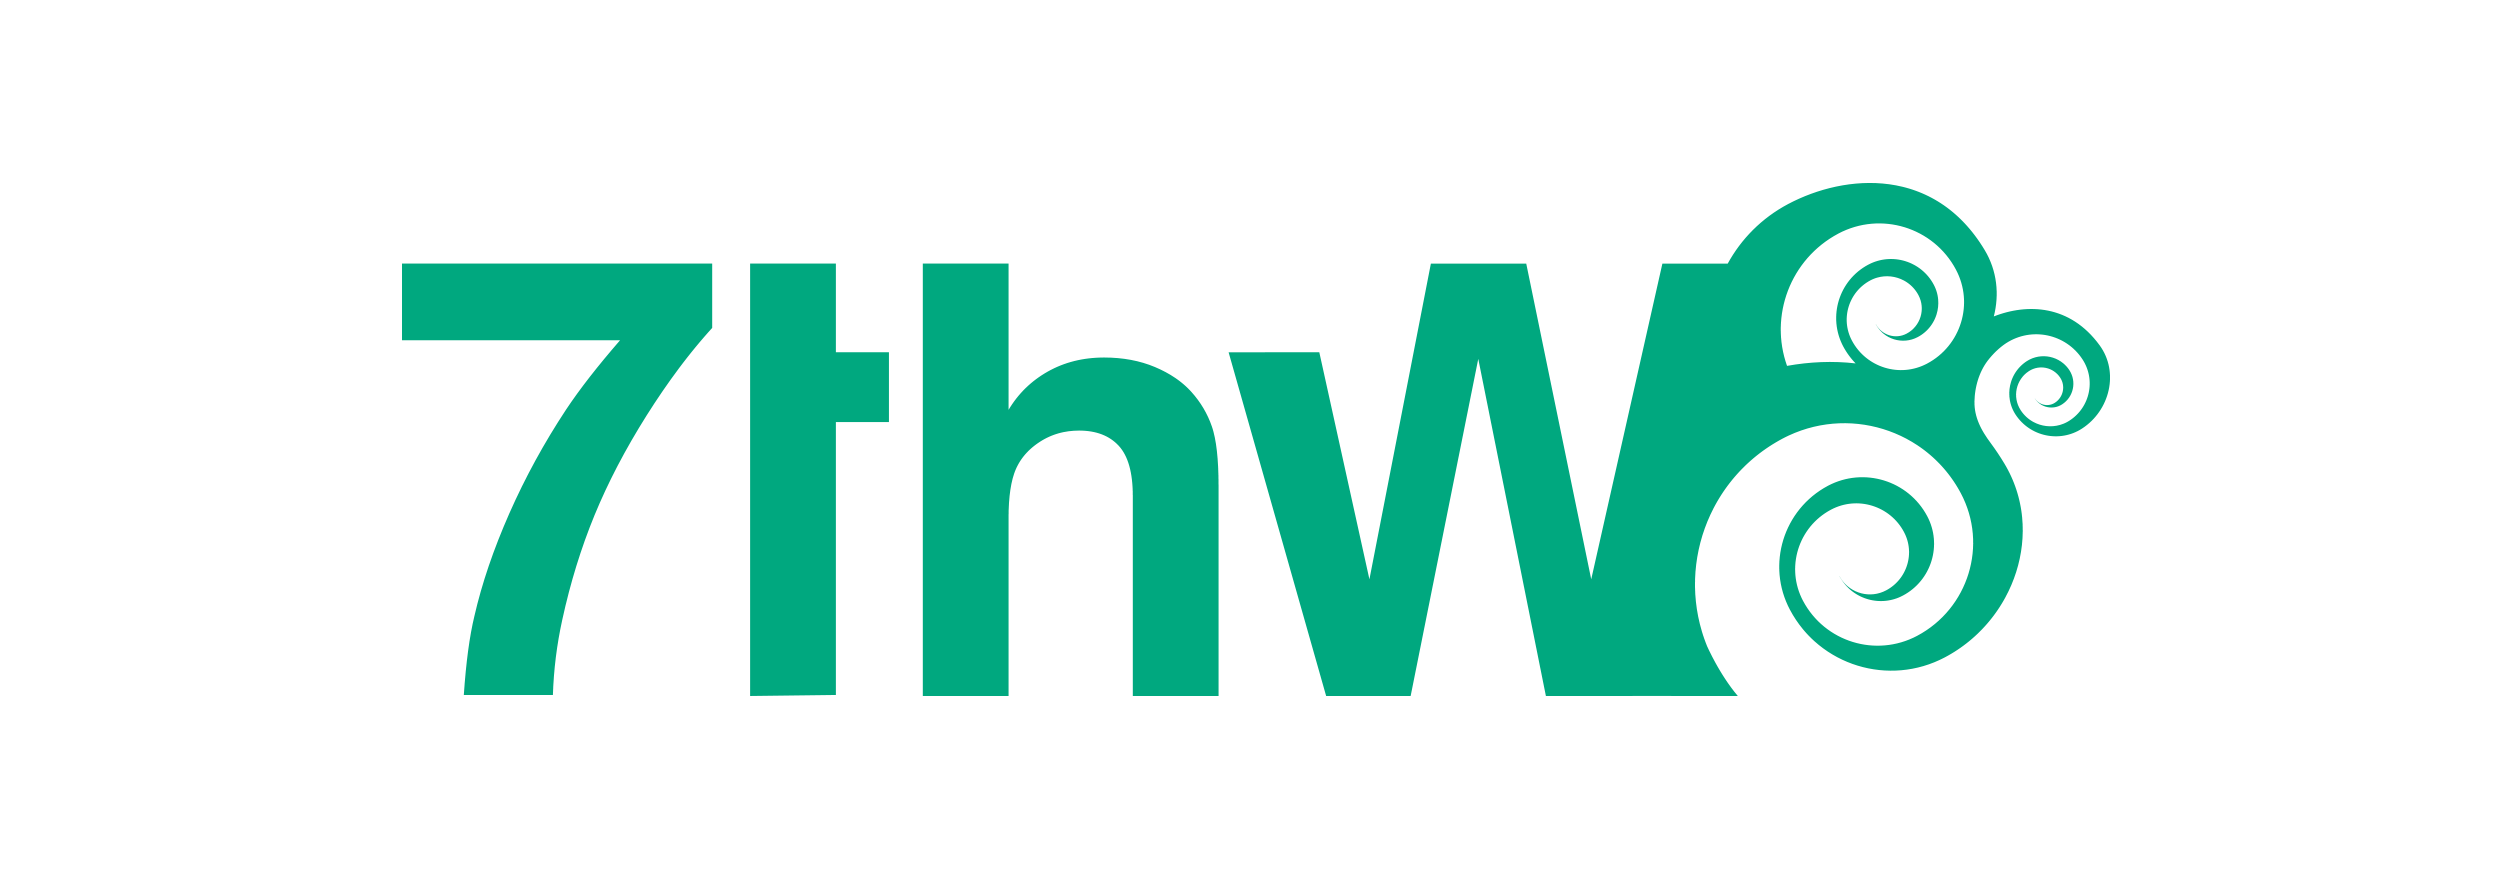 7th Wave Logo in aqua color in the shape of a 7thw with a wave illustration. 7th Wave is a company that does Web Design and Development in Key West Florida